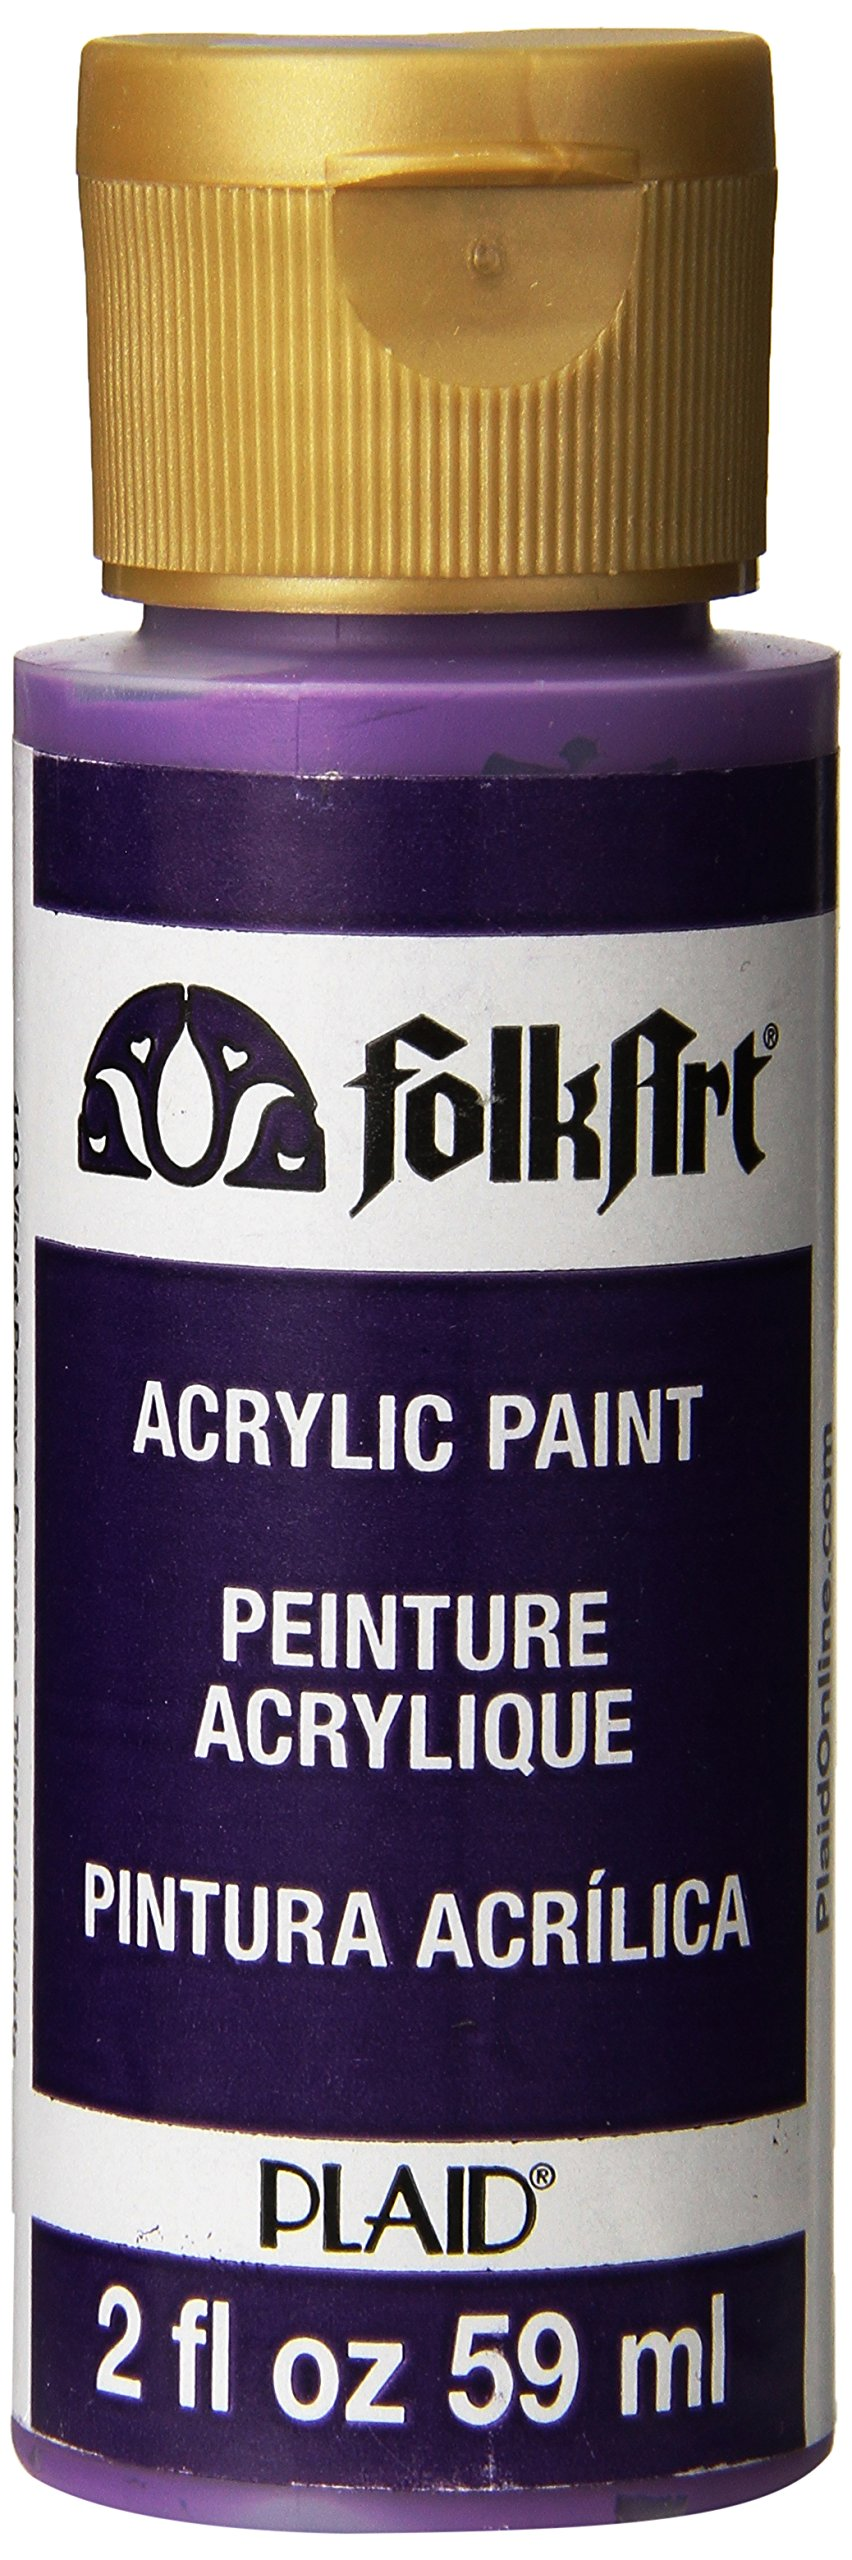 FolkArt Acrylic Paint in Assorted Colors (2 oz), 440, Violet Pansy